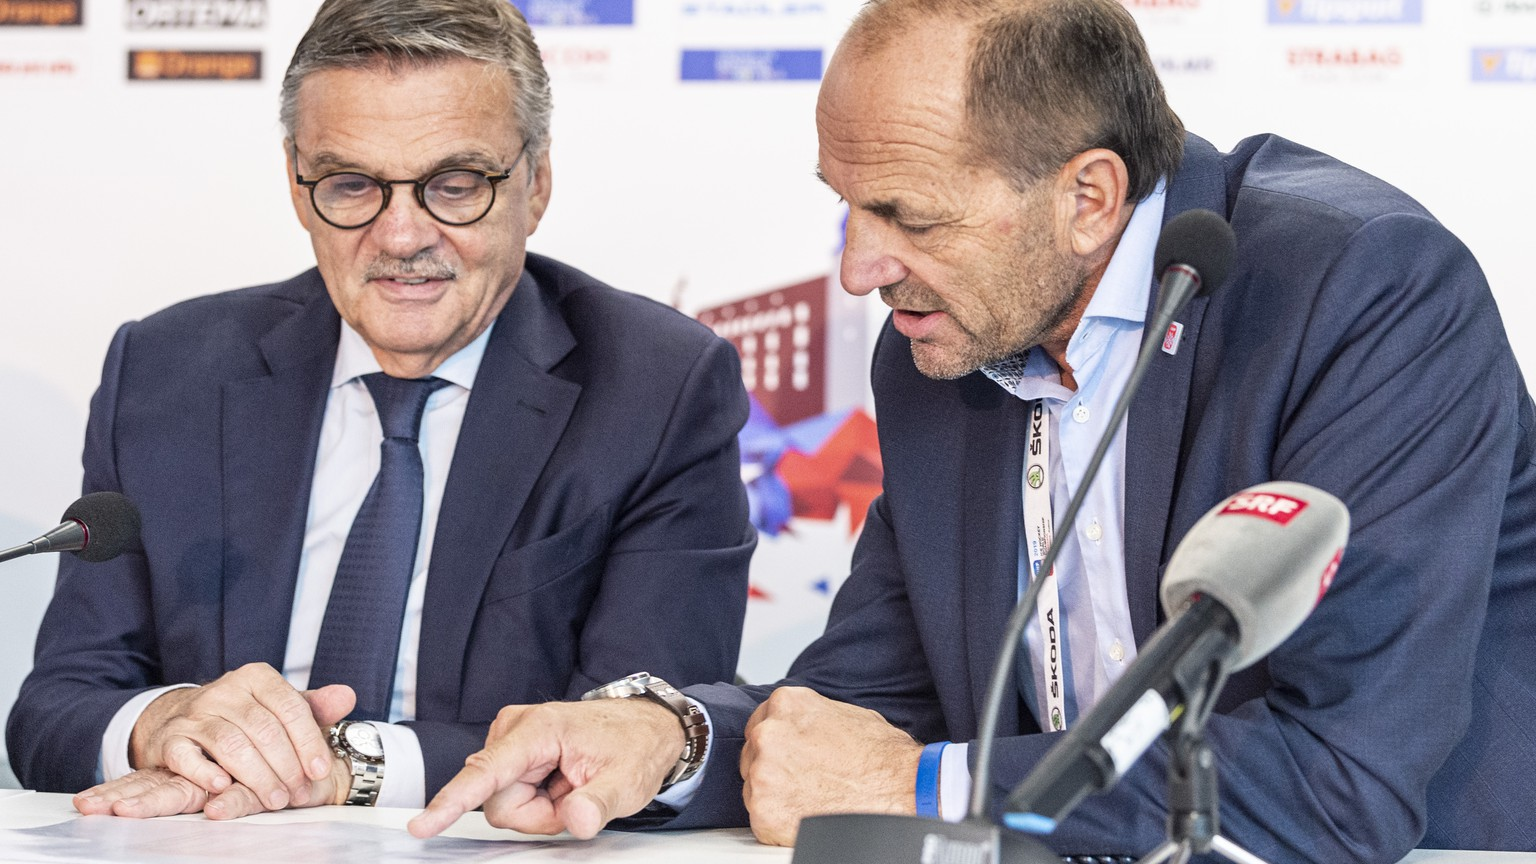 IIHF President Rene Fasel and Gian Gilli, General Secretary IIFH 2020, from left, during the press conference at the IIHF 2019 World Ice Hockey Championships, at the Ondrej Nepela Arena in Bratislava, Slovakia, on Saturday, May 25, 2019. (KEYSTONE/Melanie Duchene)